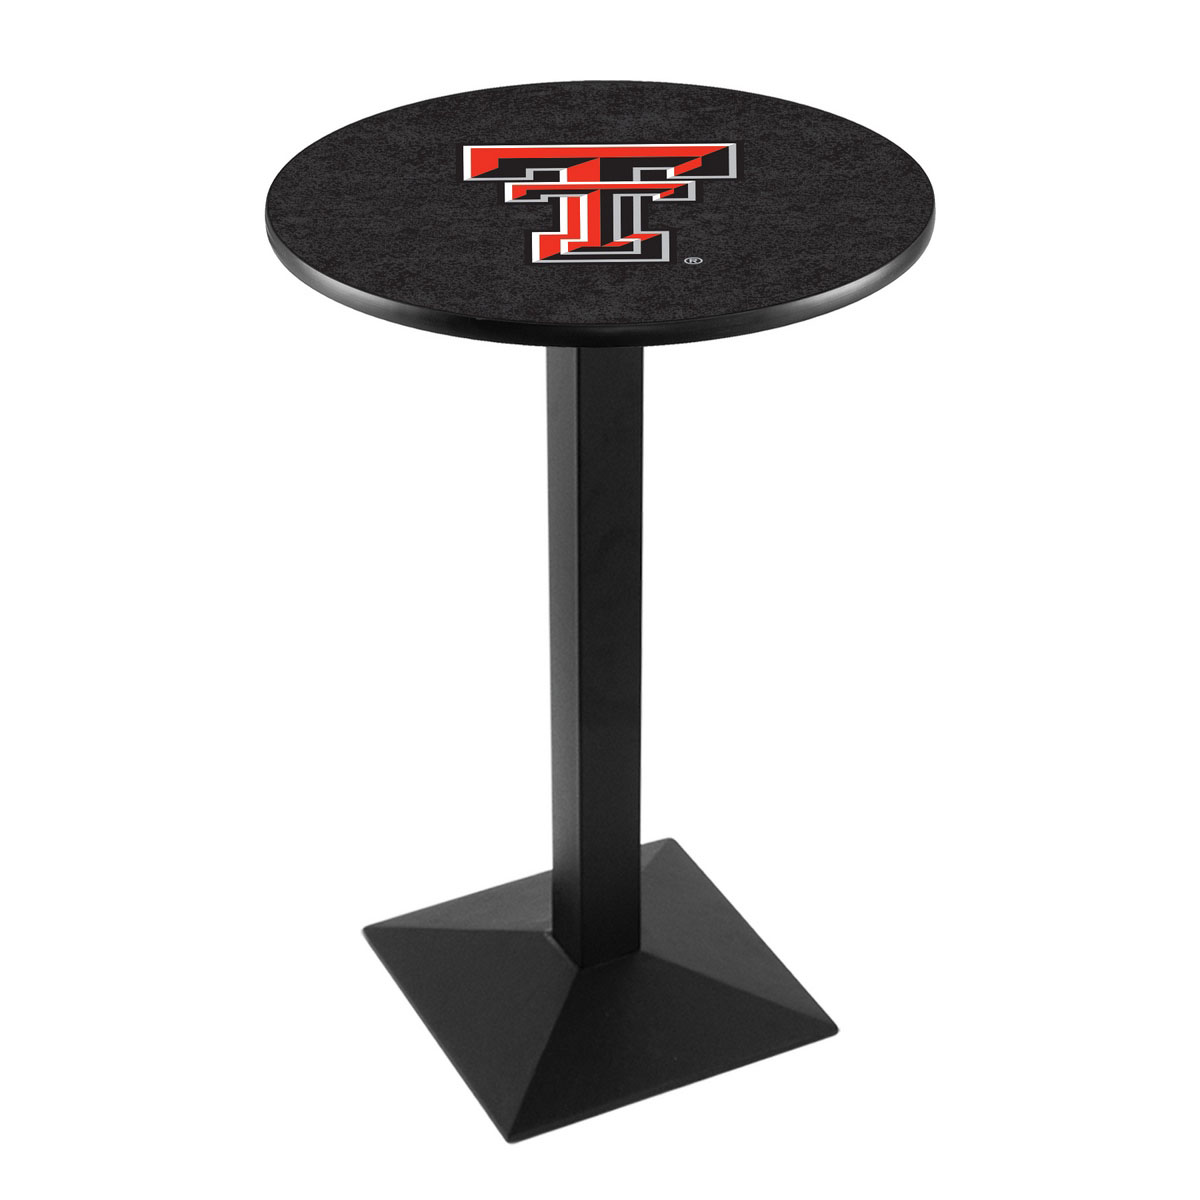 Lovable Texas Tech University Logo Pub Bar Table Square Stand Product Photo